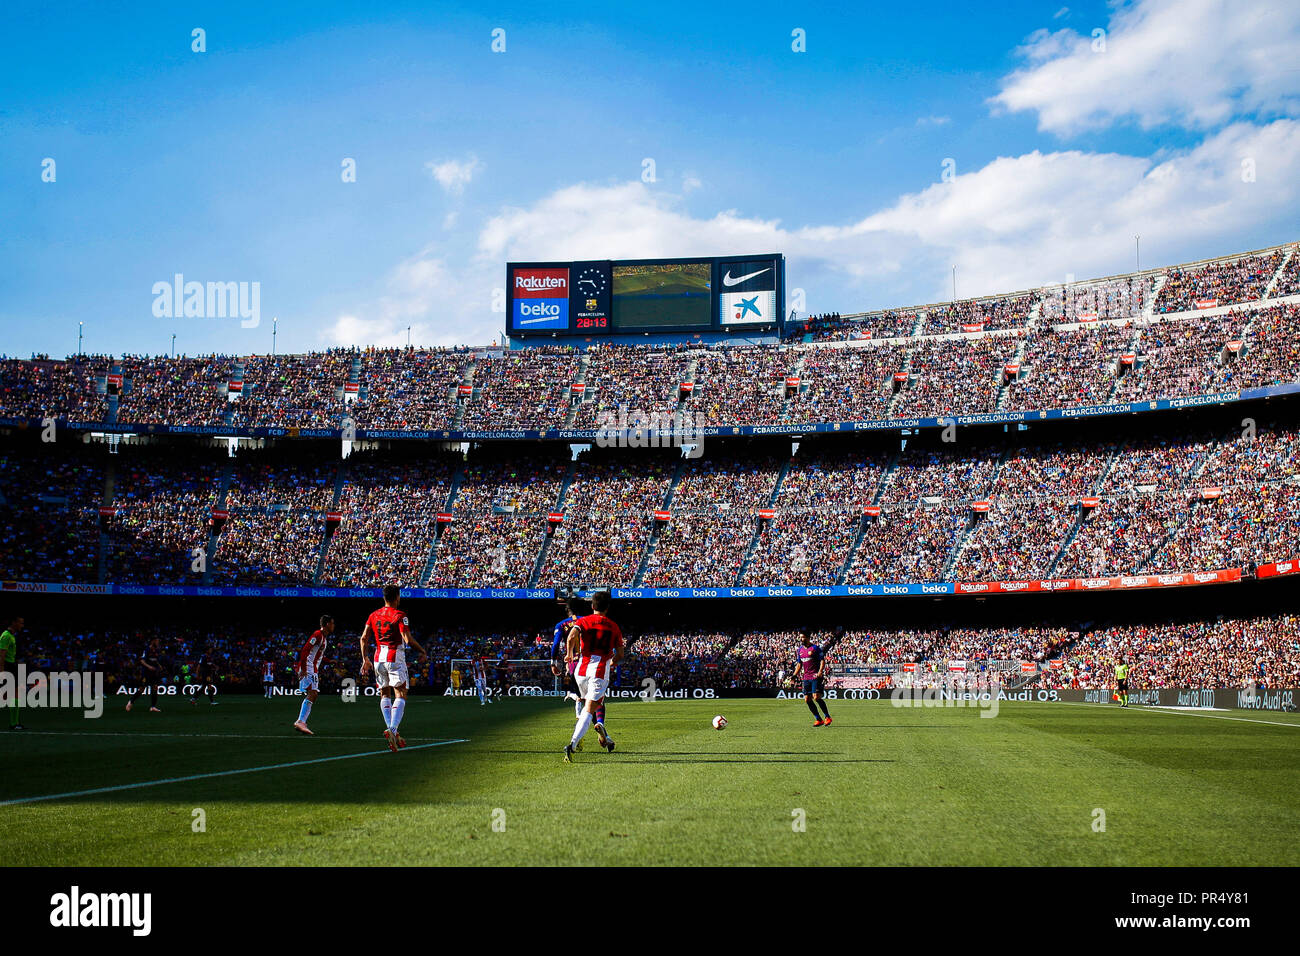 Camp Nou, Barcelona, Spain. 29th Sep, 2018. La Liga football, Barcelona versus Athletic Bilbao; Panoramic view of the Camp Nou stadium during the game Credit: Action Plus Sports/Alamy Live News Stock Photo